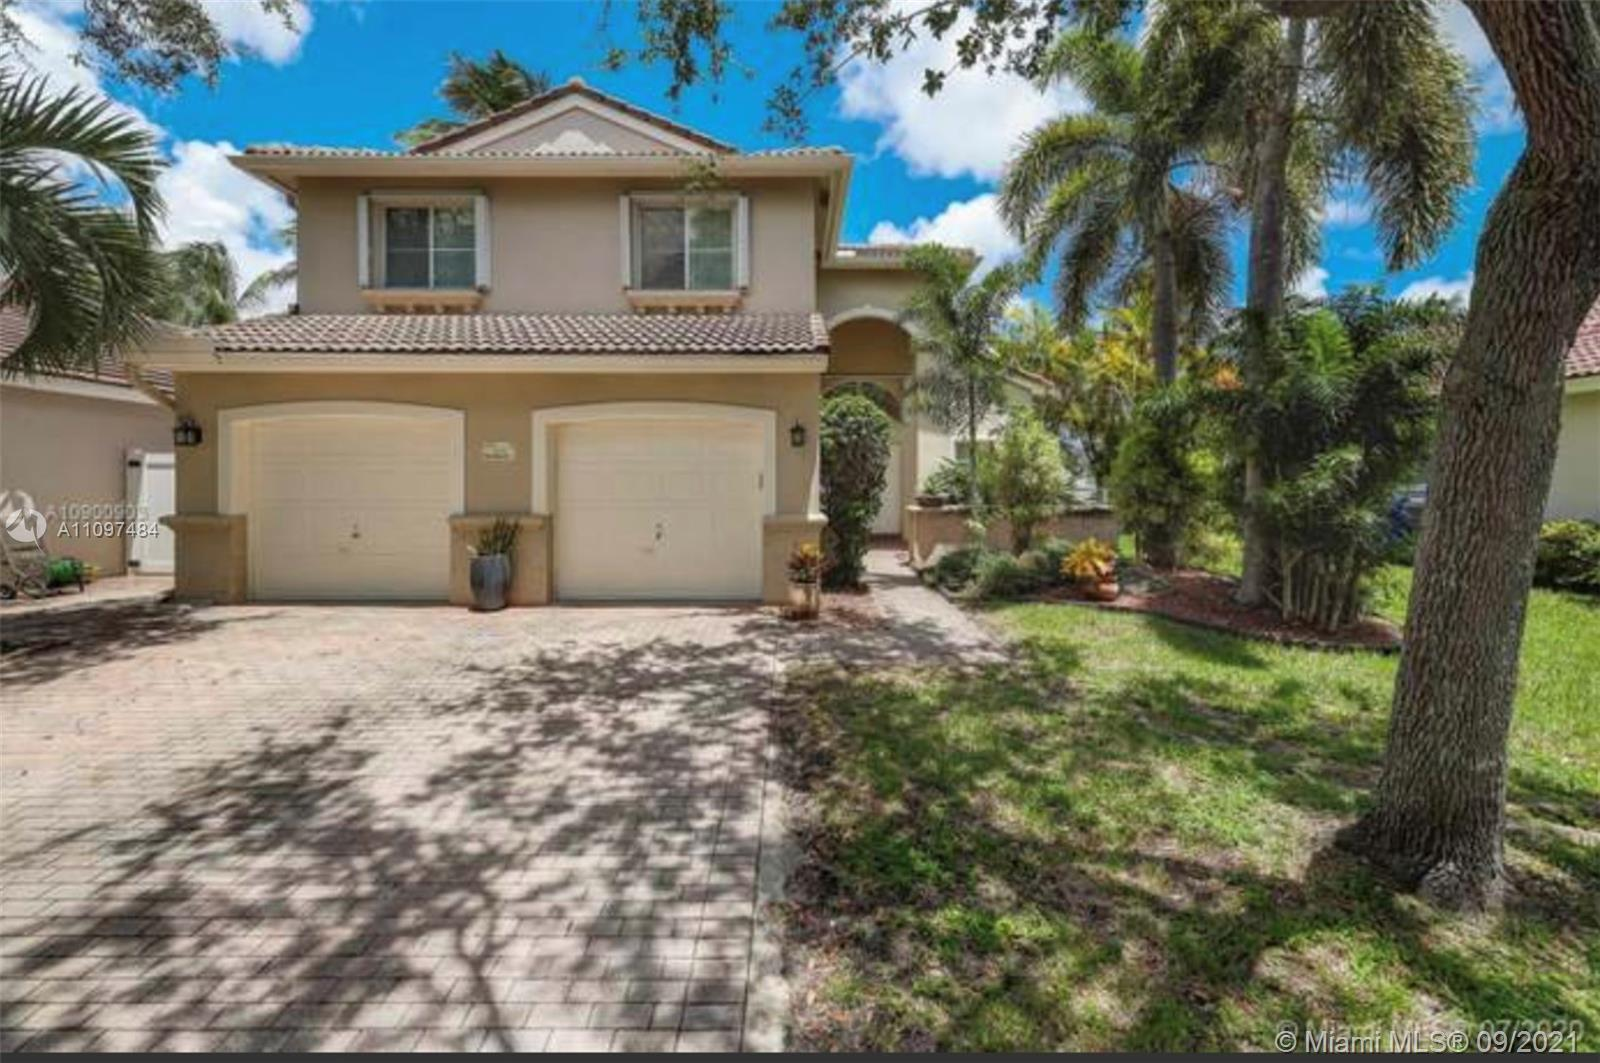 Beautiful and lovely house  for sale!!!!! AMAZING neighborhood !!!! HOUSE IS FULL RENOVATED ……4 bedr